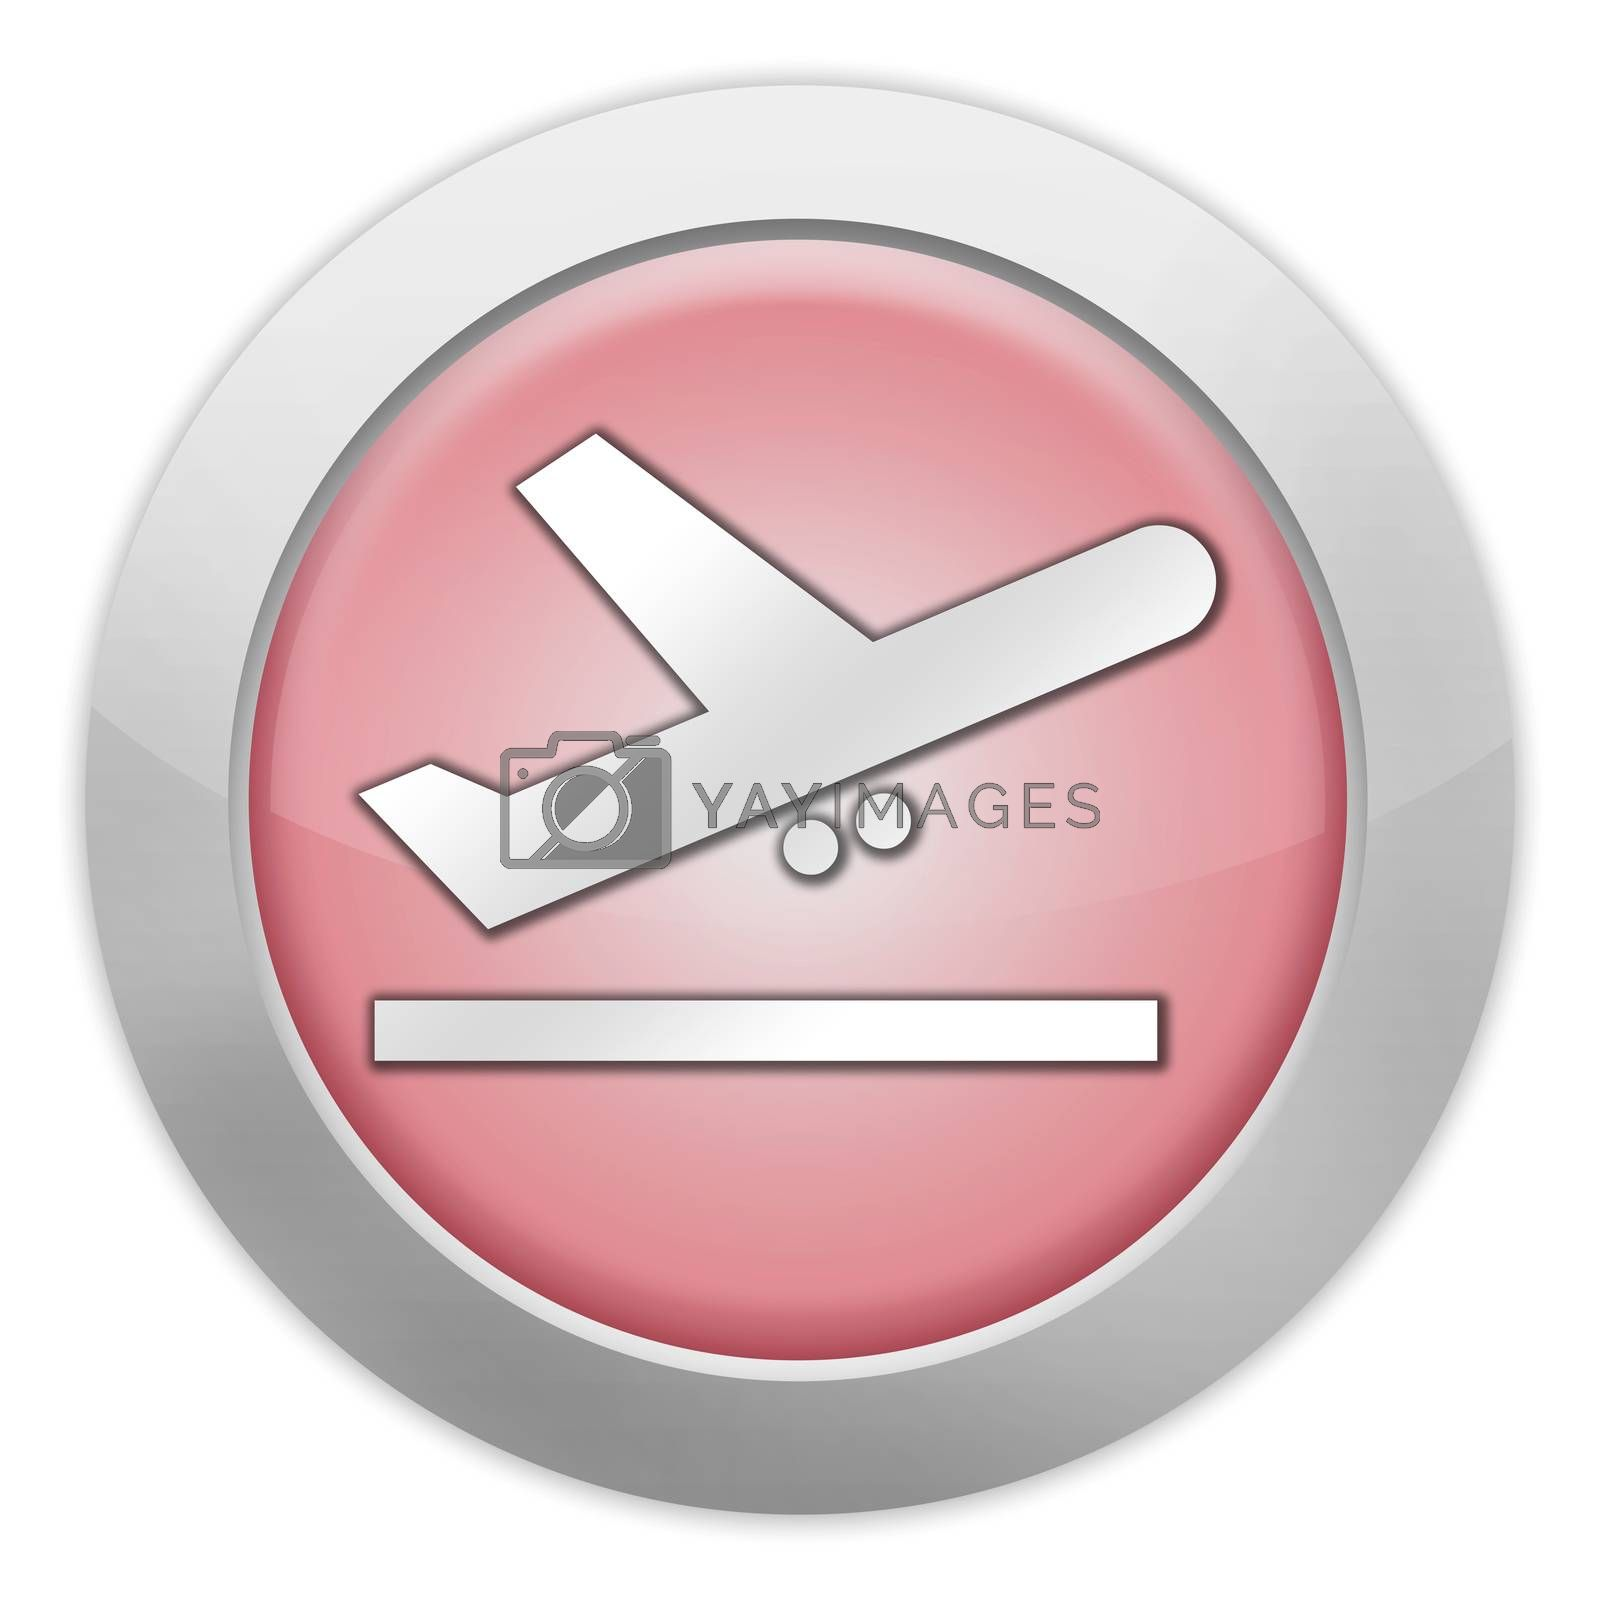 Icon, Button, Pictogram Airport Departures by mindscanner